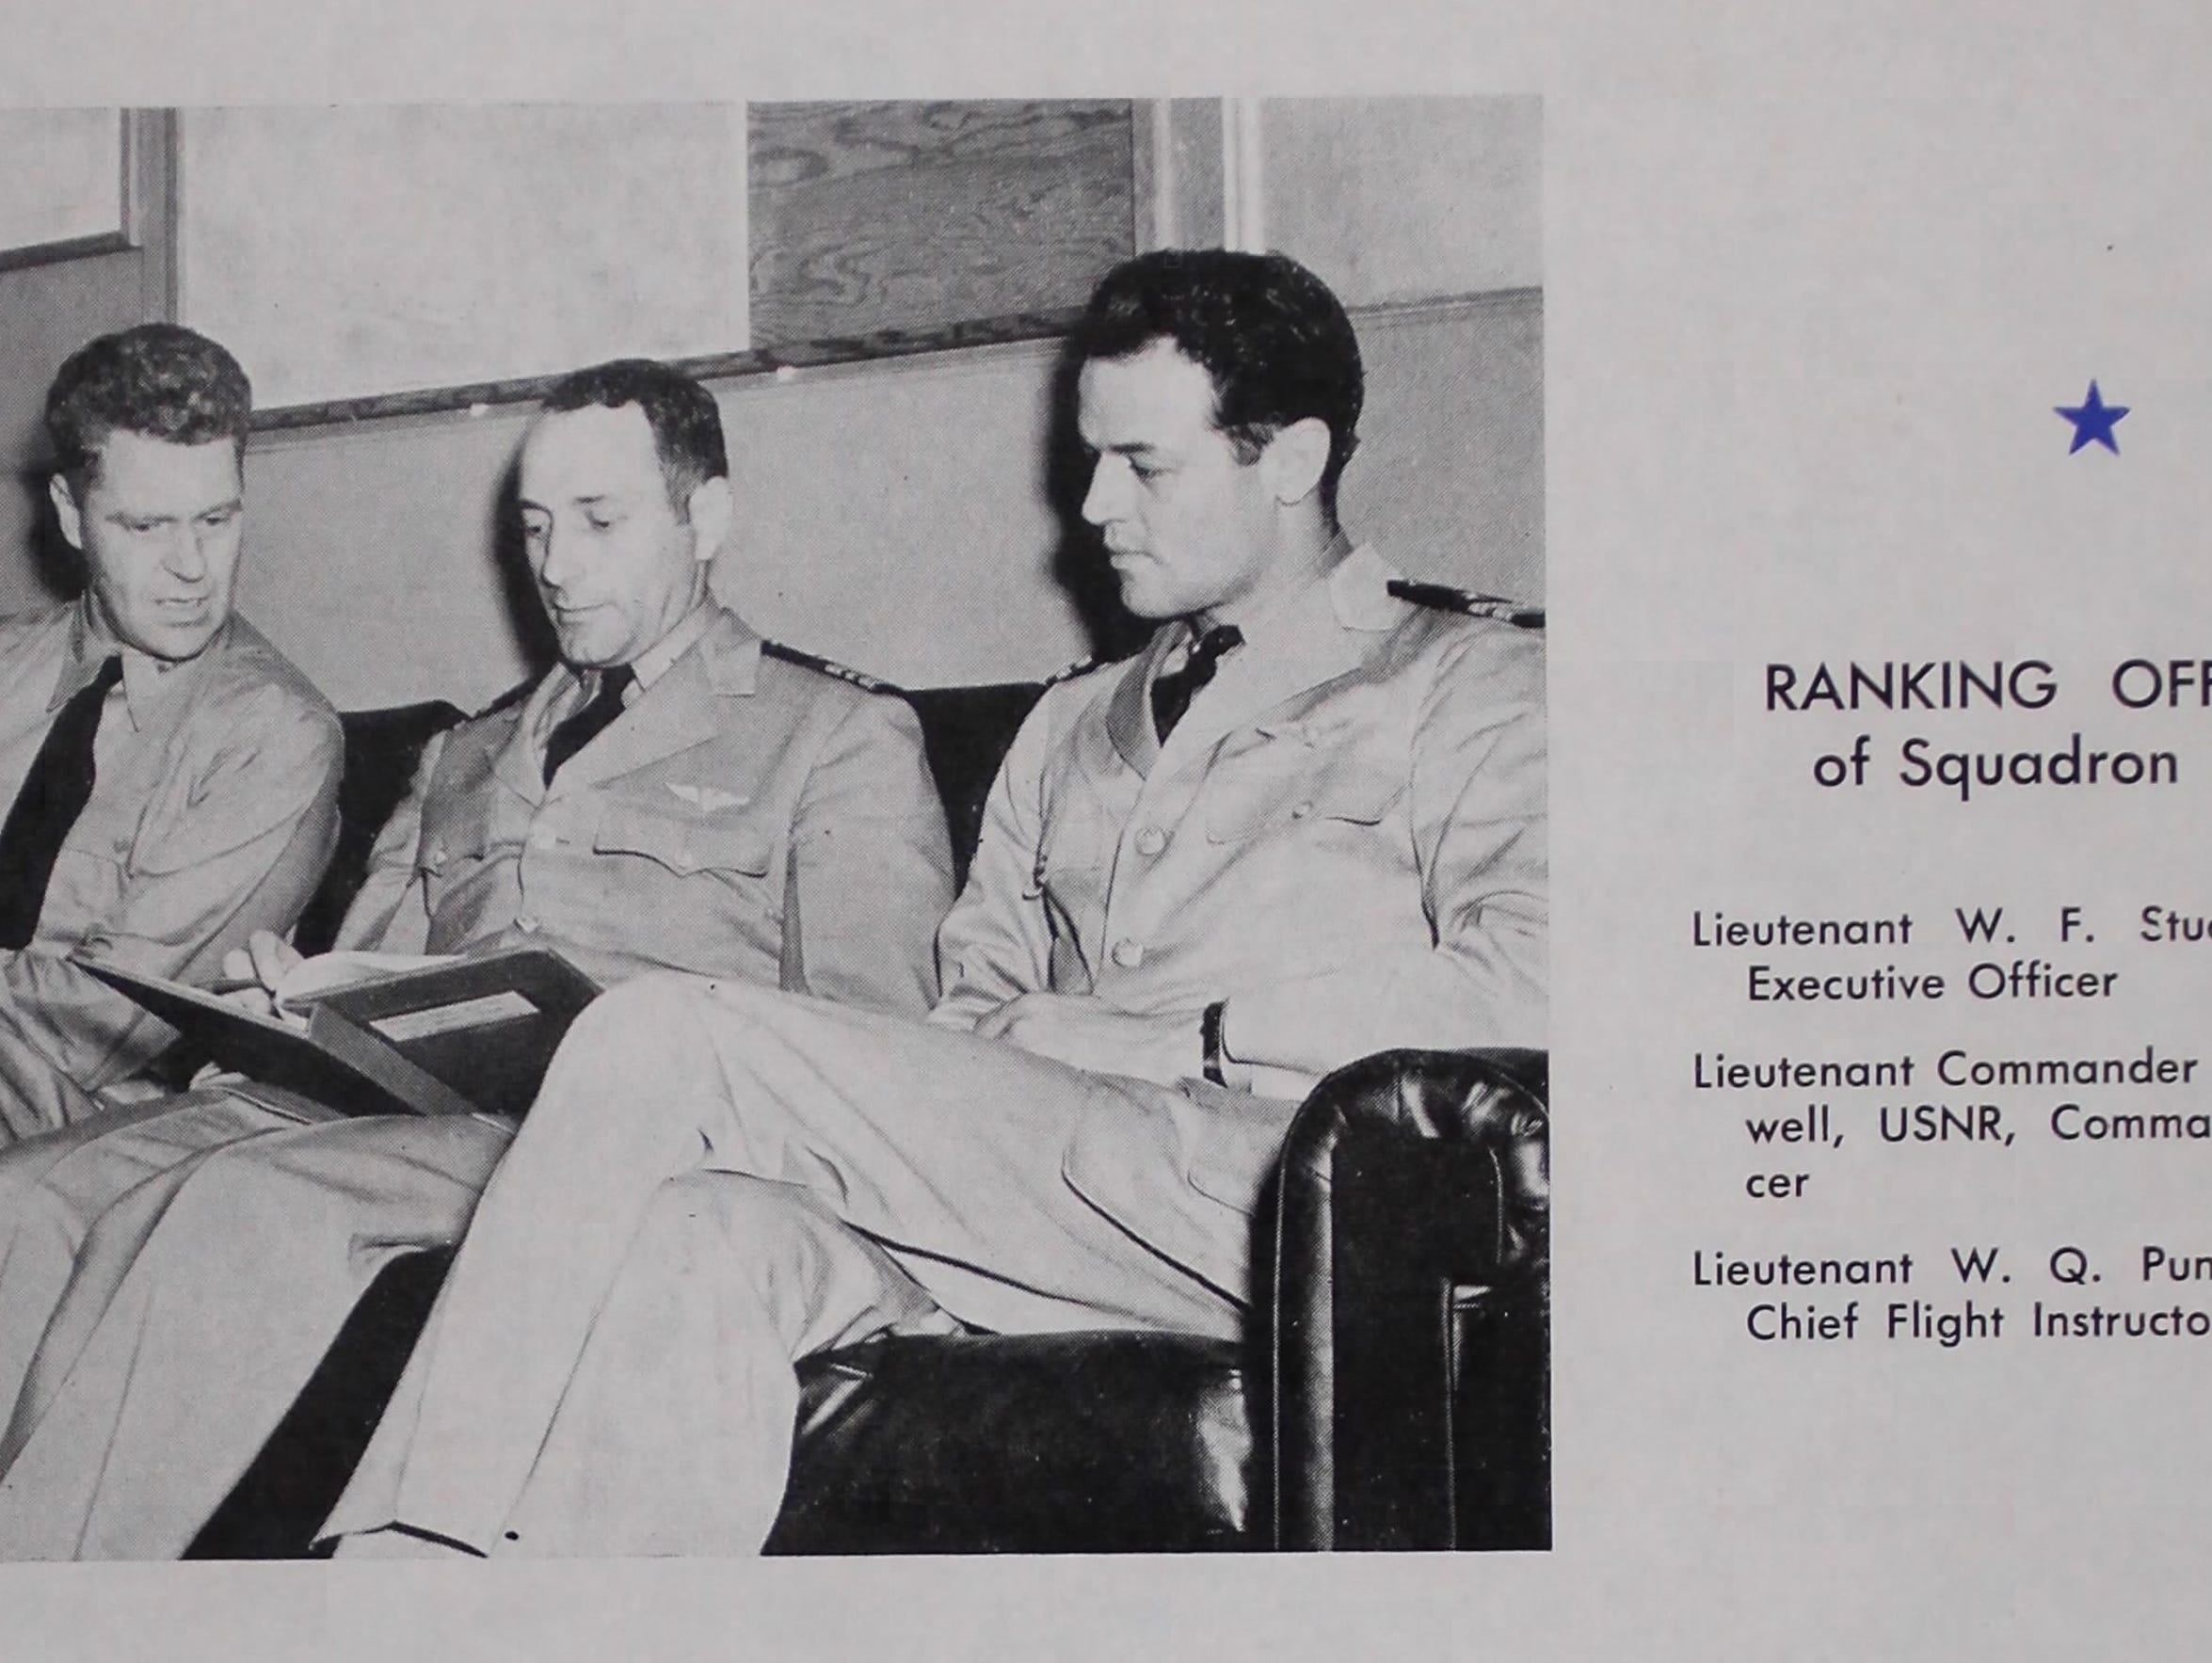 William Punnell (right) was a chief flight instructor